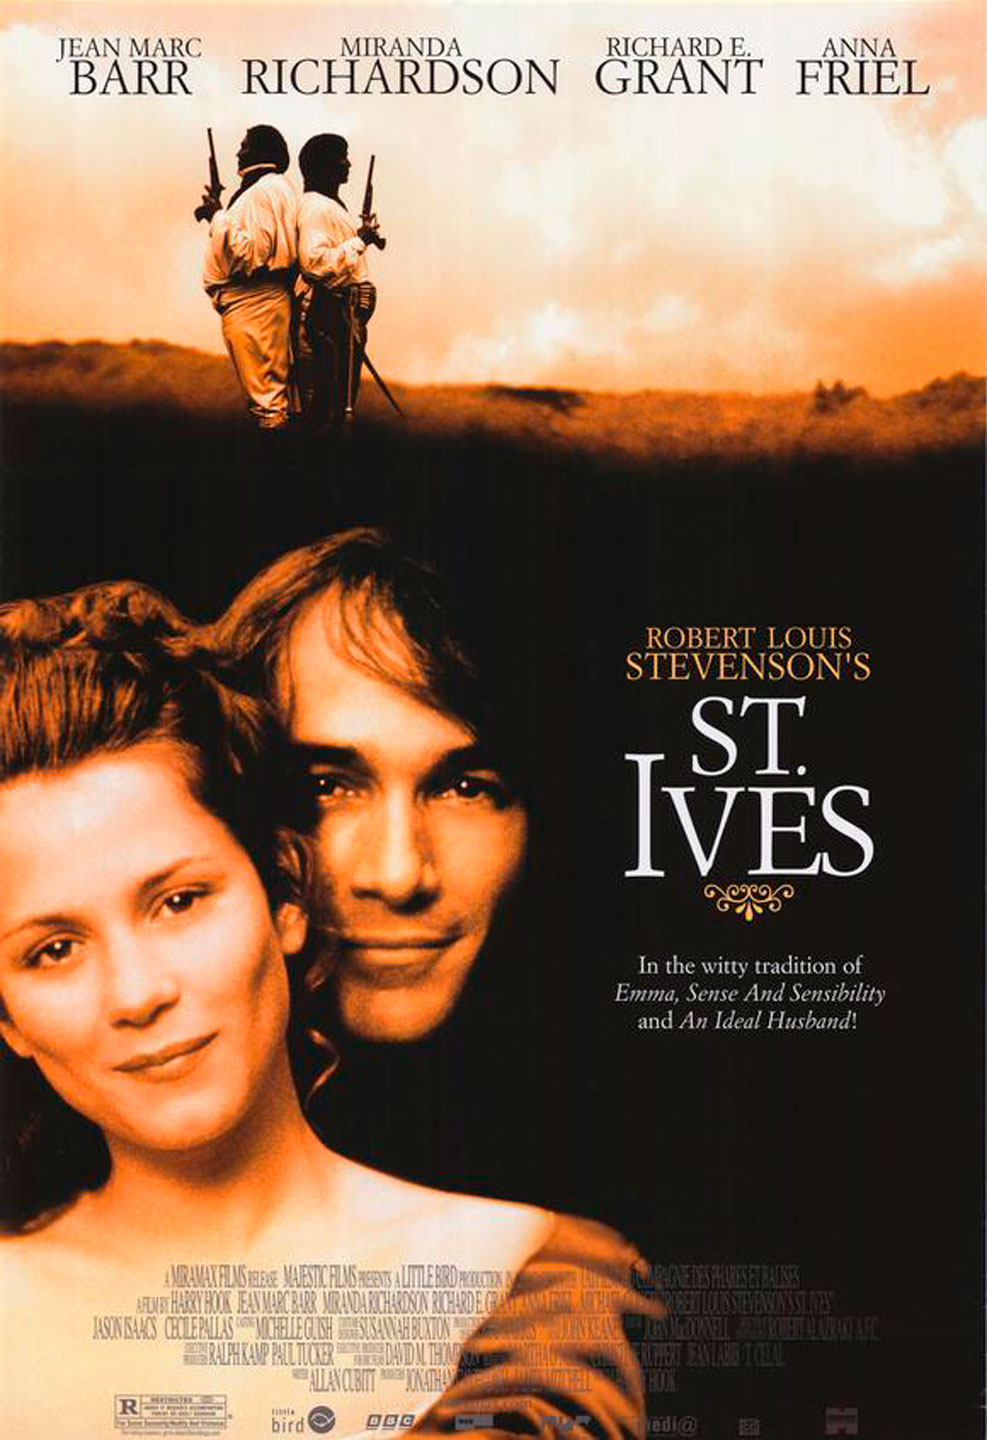 St. ives trailer